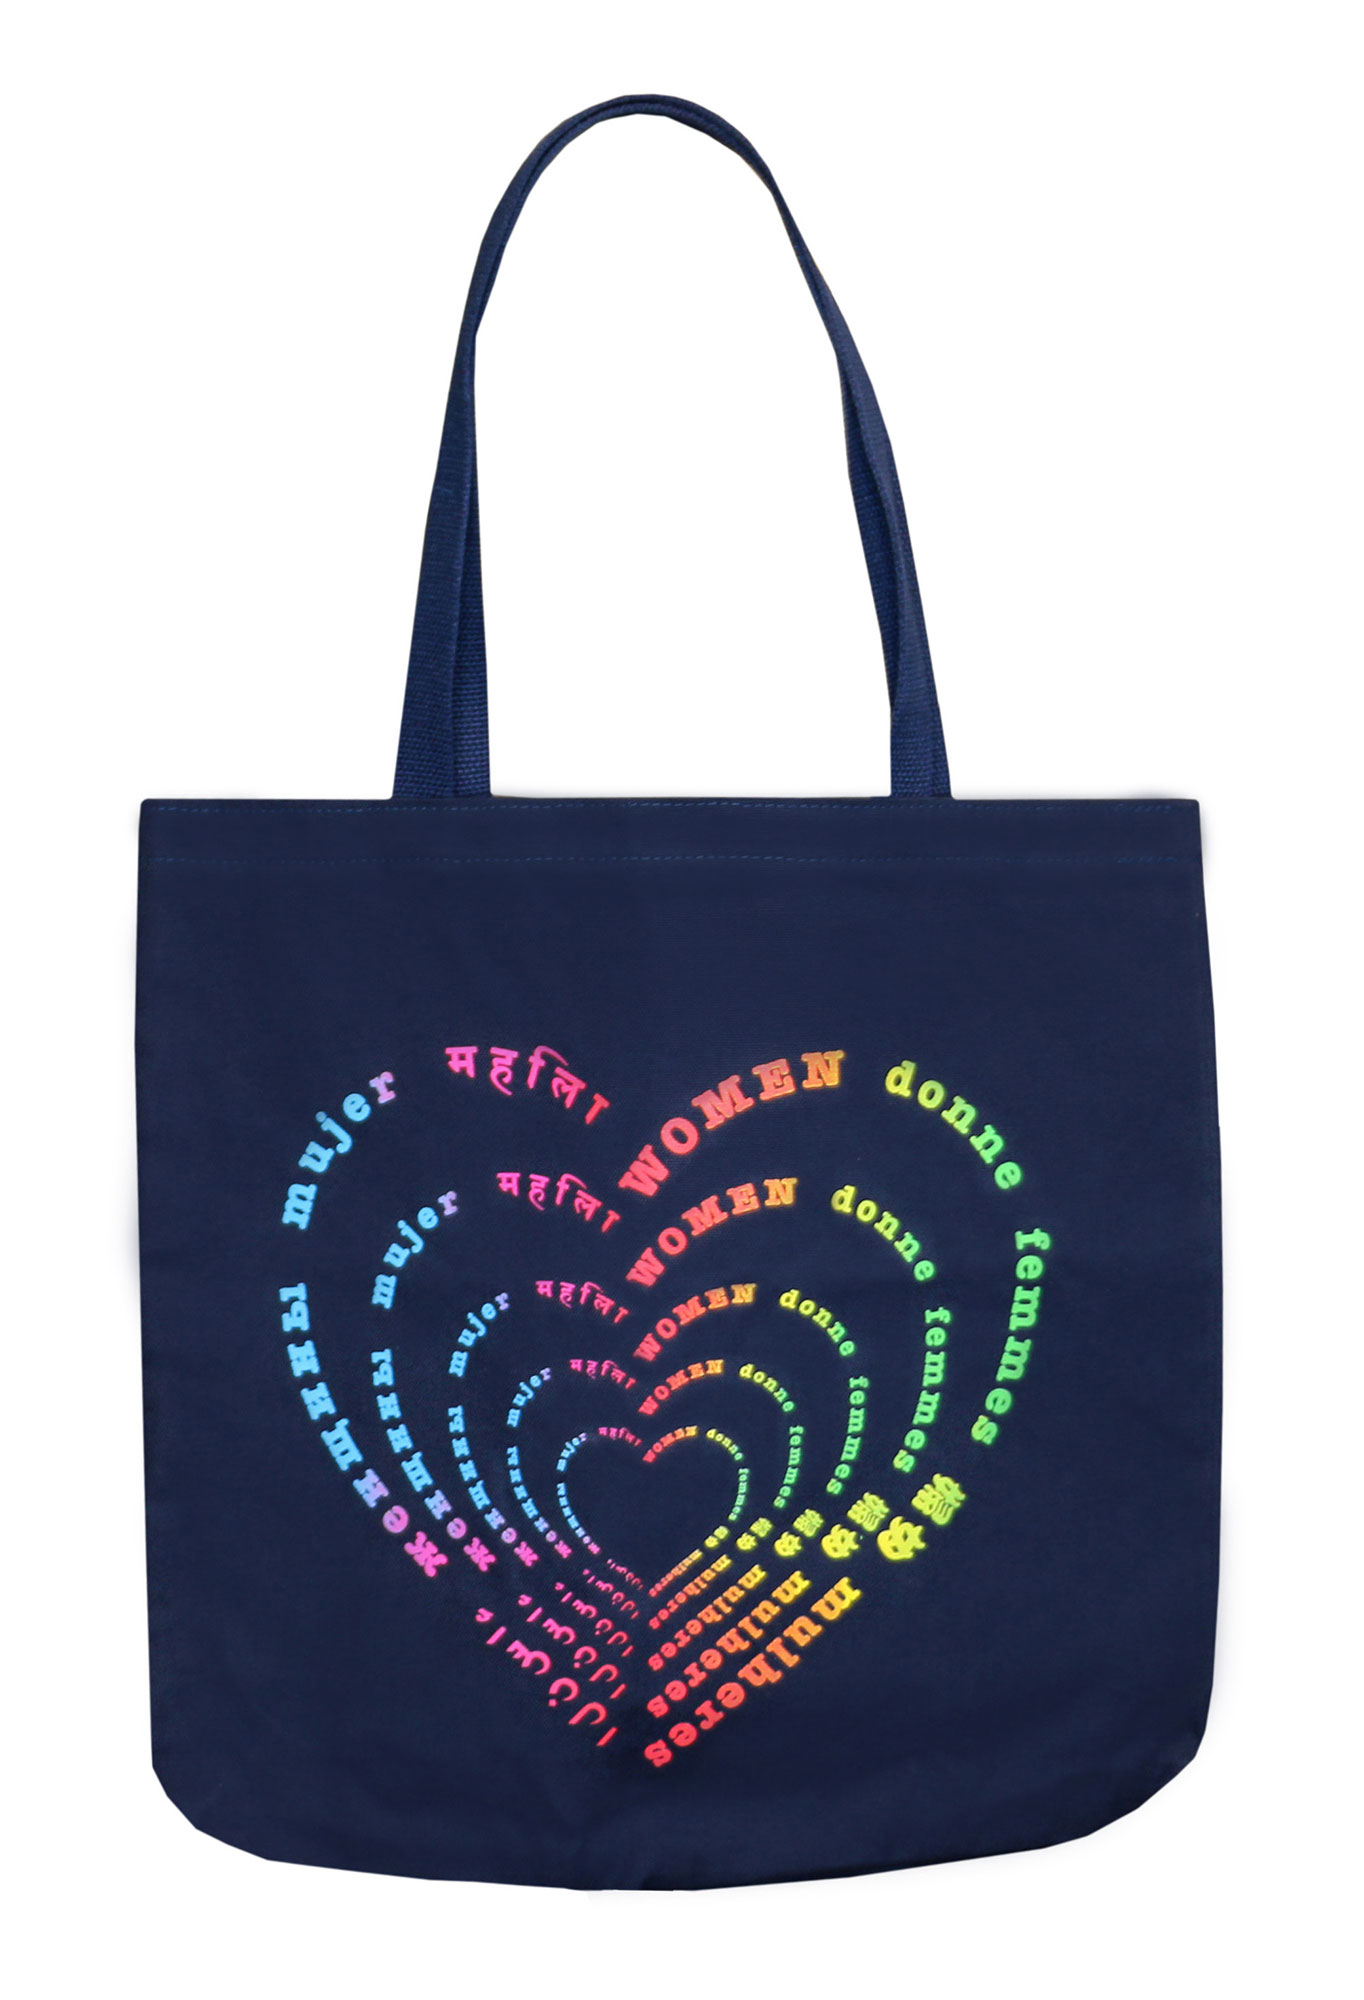 """Women's History Month Gallery - This colorful carry-all features the word """"women"""" written in multiple languages, and 100% of the proceeds benefit the World of Children organization to change the future of the world's most vulnerable kids. $40, rachelroy.com"""